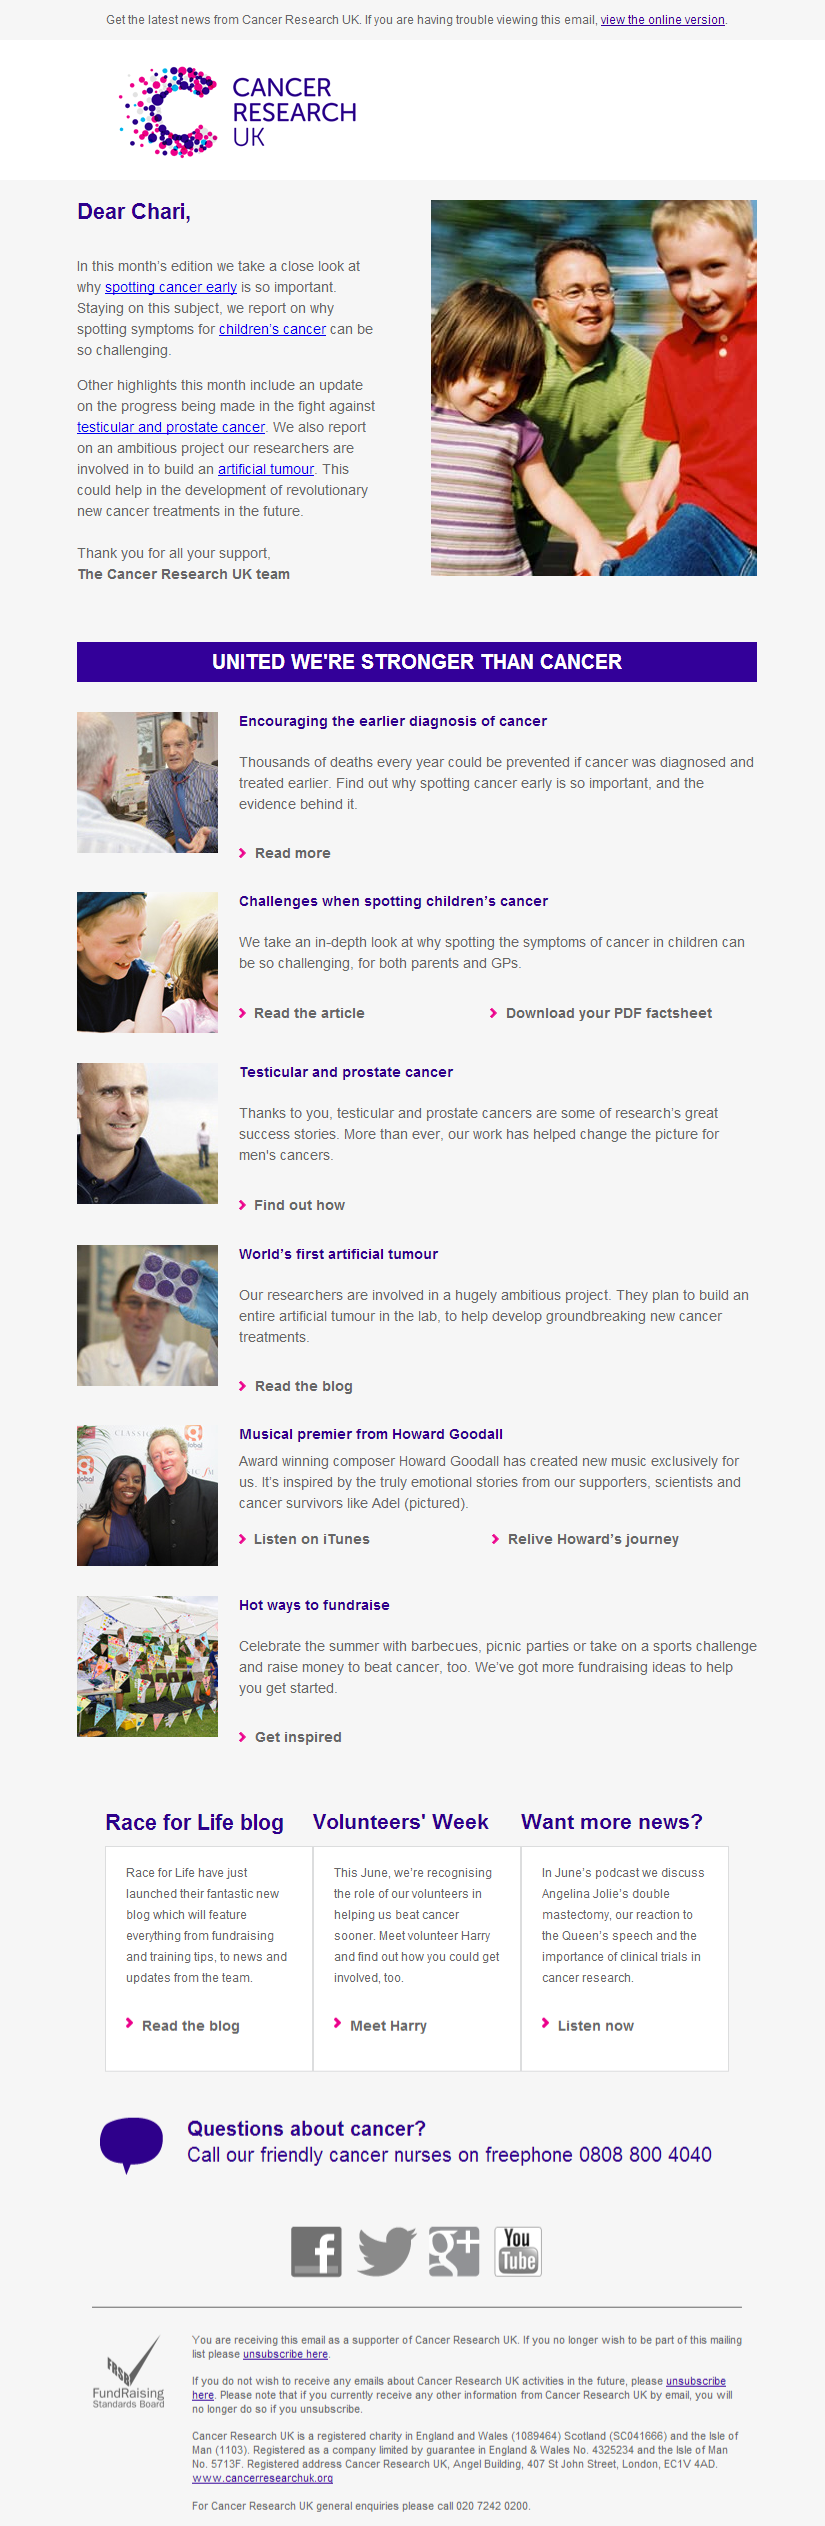 Cancer Research UK - Spotting the signs of cancer sooner